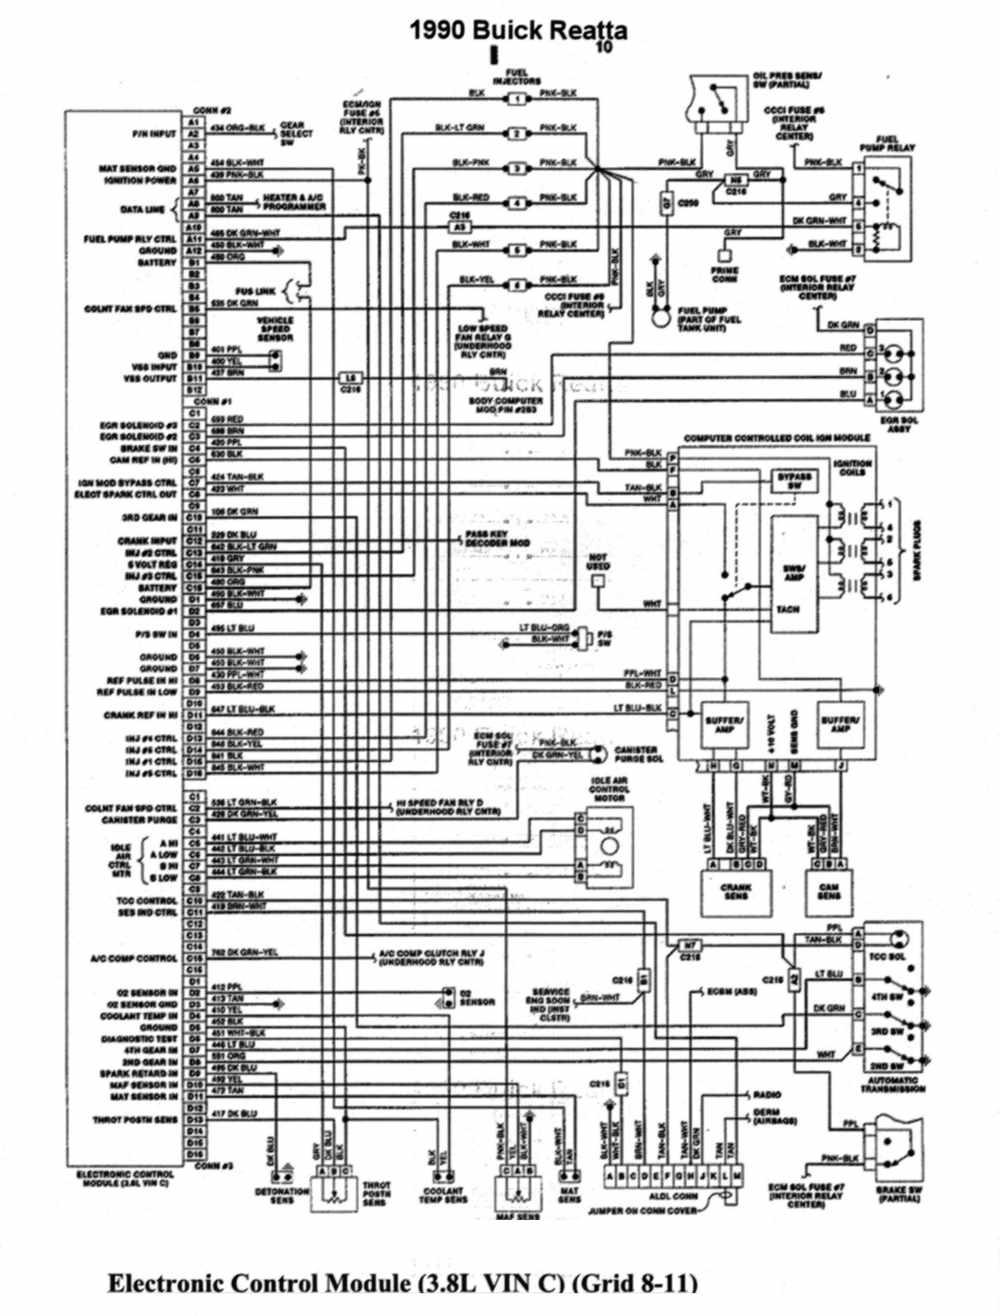 1970 Buick Skylark Wiring Diagram from 1.bp.blogspot.com